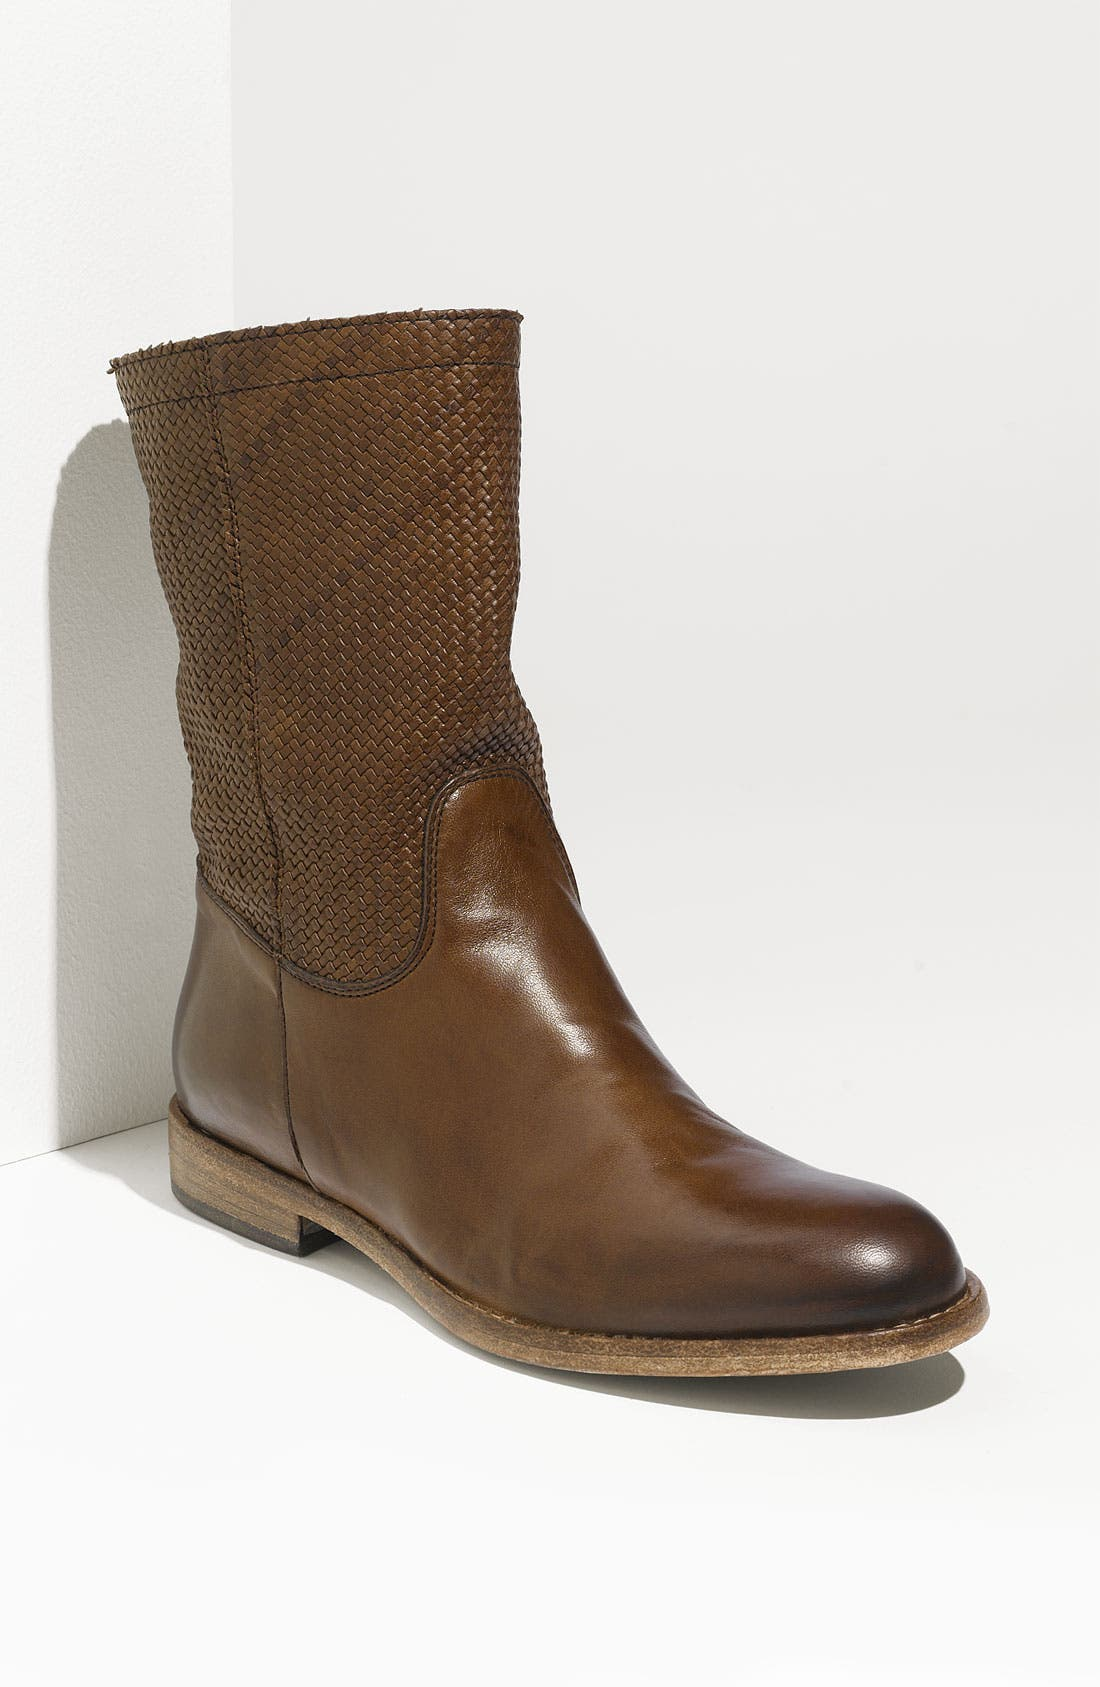 Alternate Image 1 Selected - Alberto Fermani Leather Boot